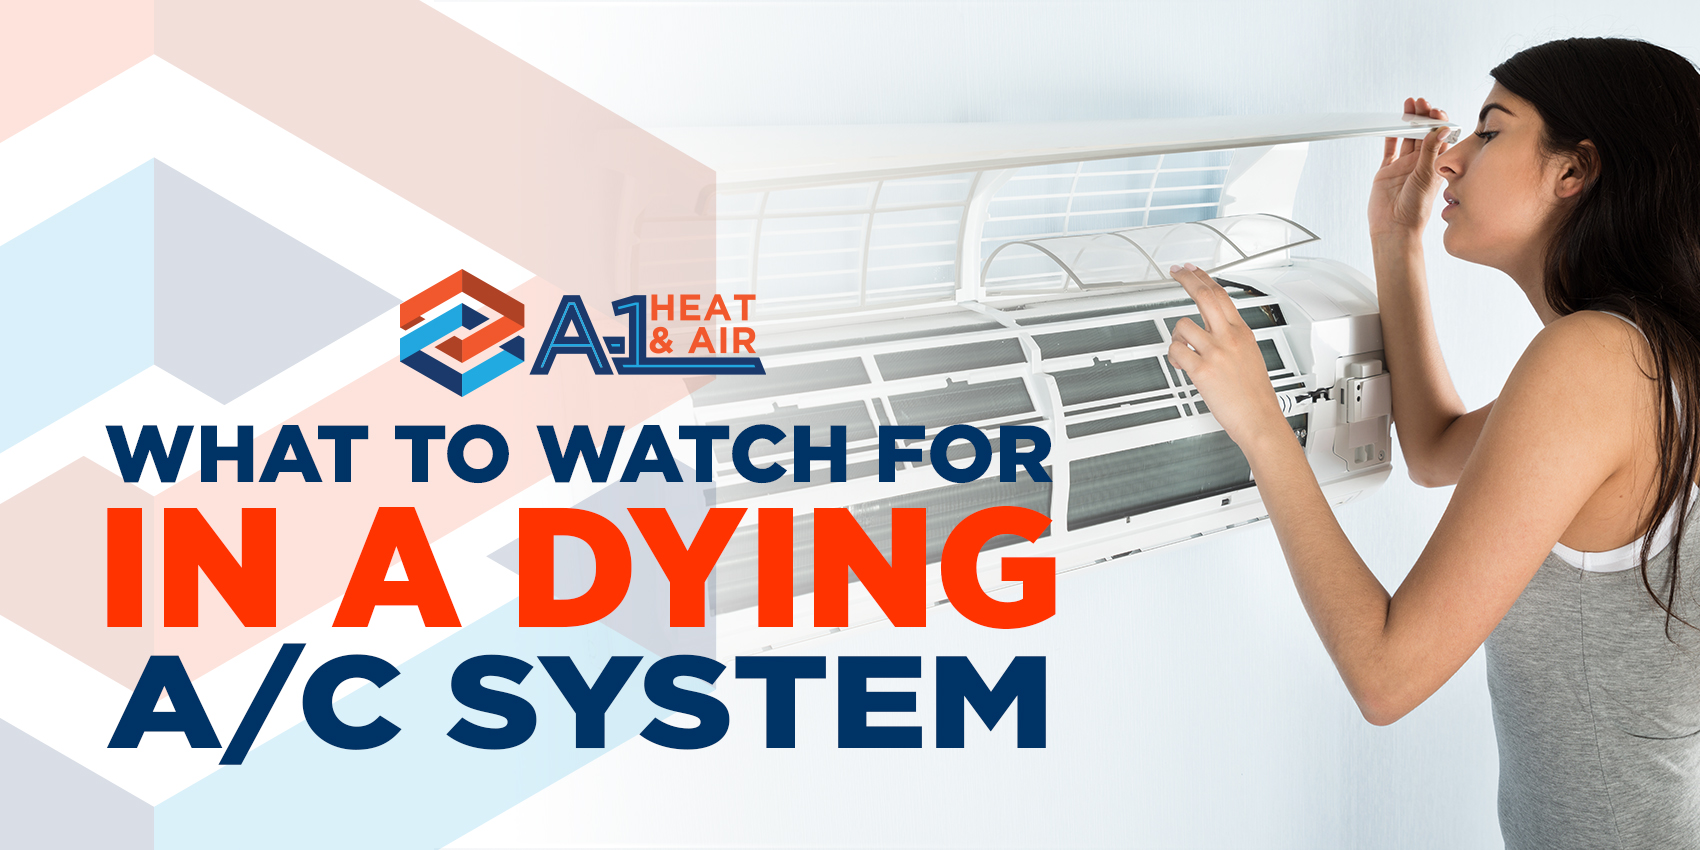 What to Watch For in a Dying A/C System